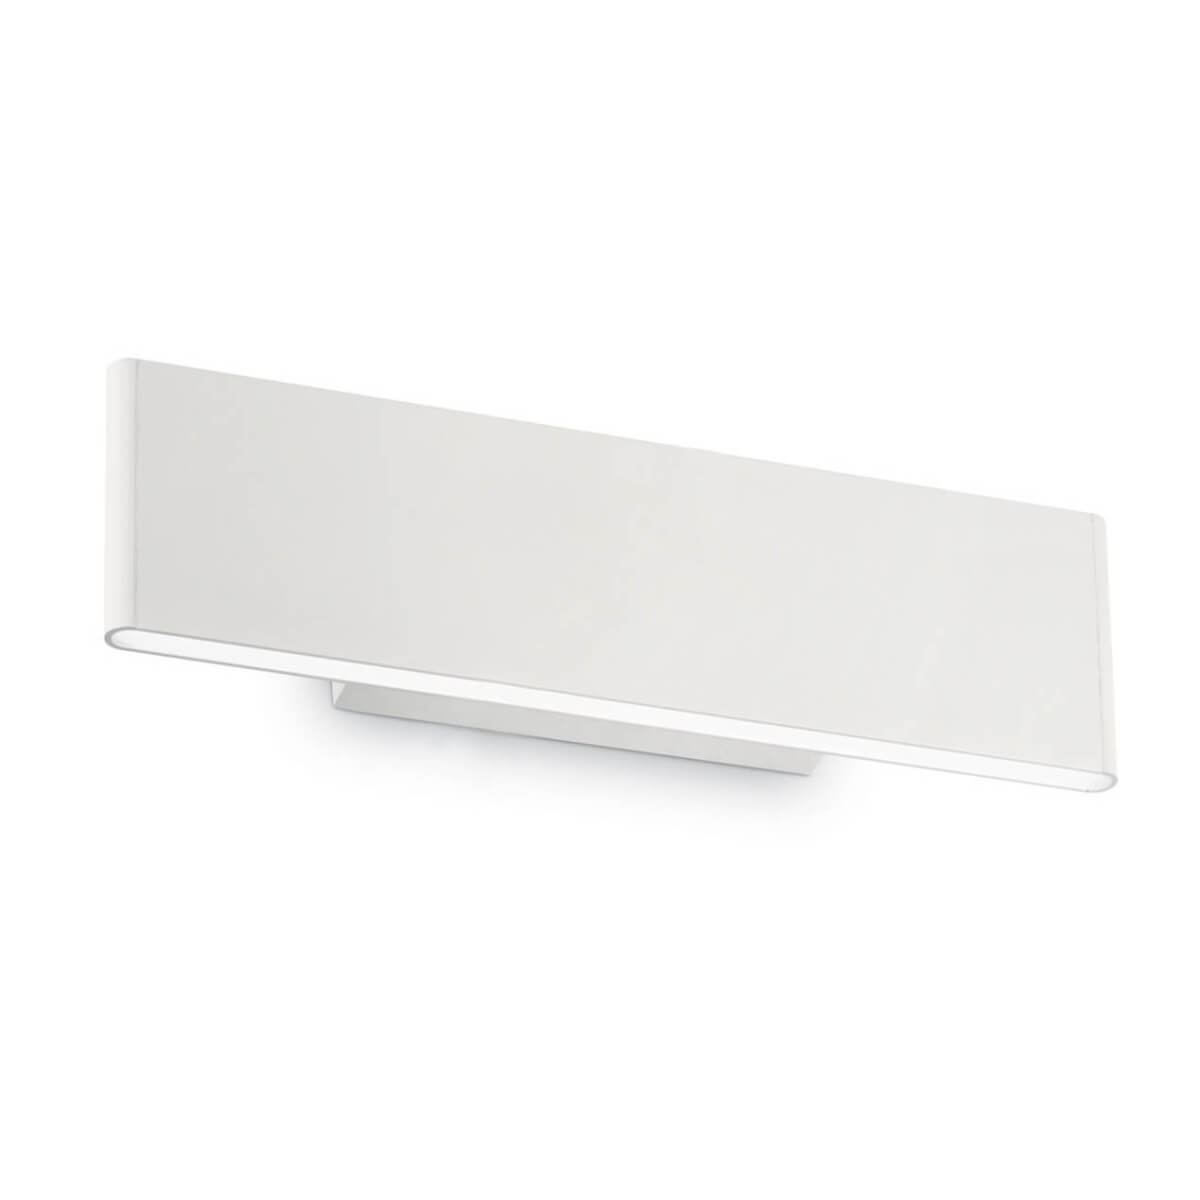 Светильник Ideal Lux Desk Ap2 Bianco